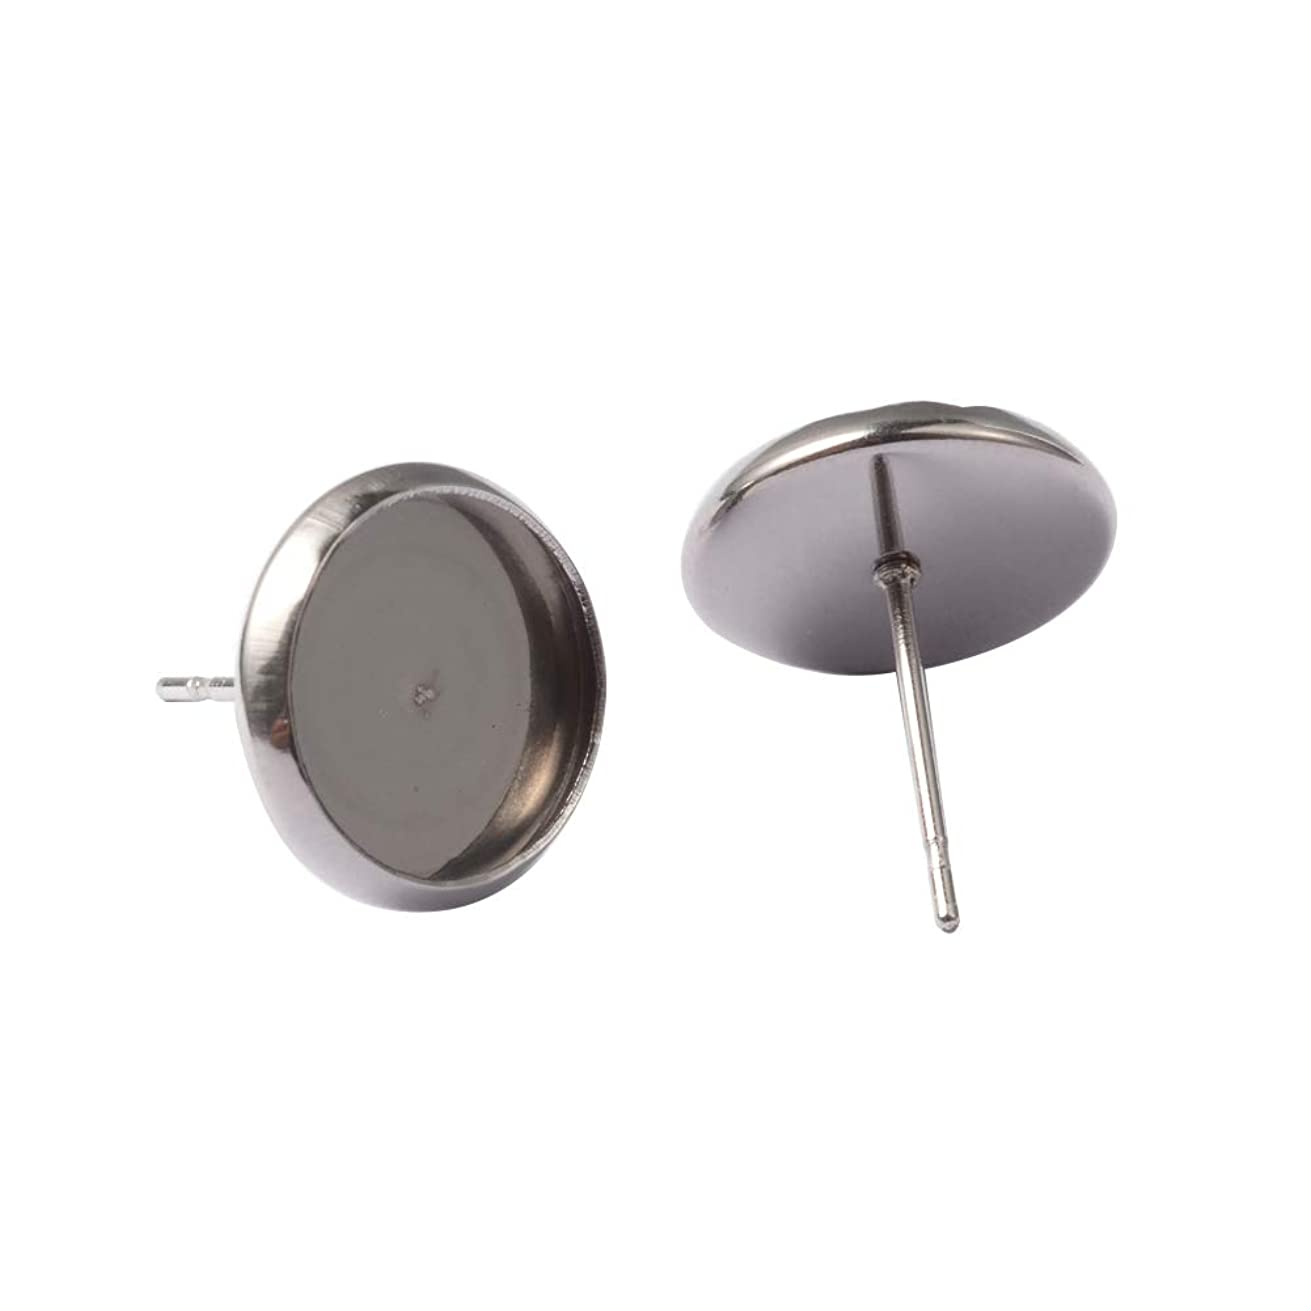 PH PandaHall About 200 Pcs 304 Stainless Steel Ear Stud, Flat Round Bezel Tray Blank Cabochon Setting Earring Posts for Earring Finding, Platinum, Inner Tray: 10mm